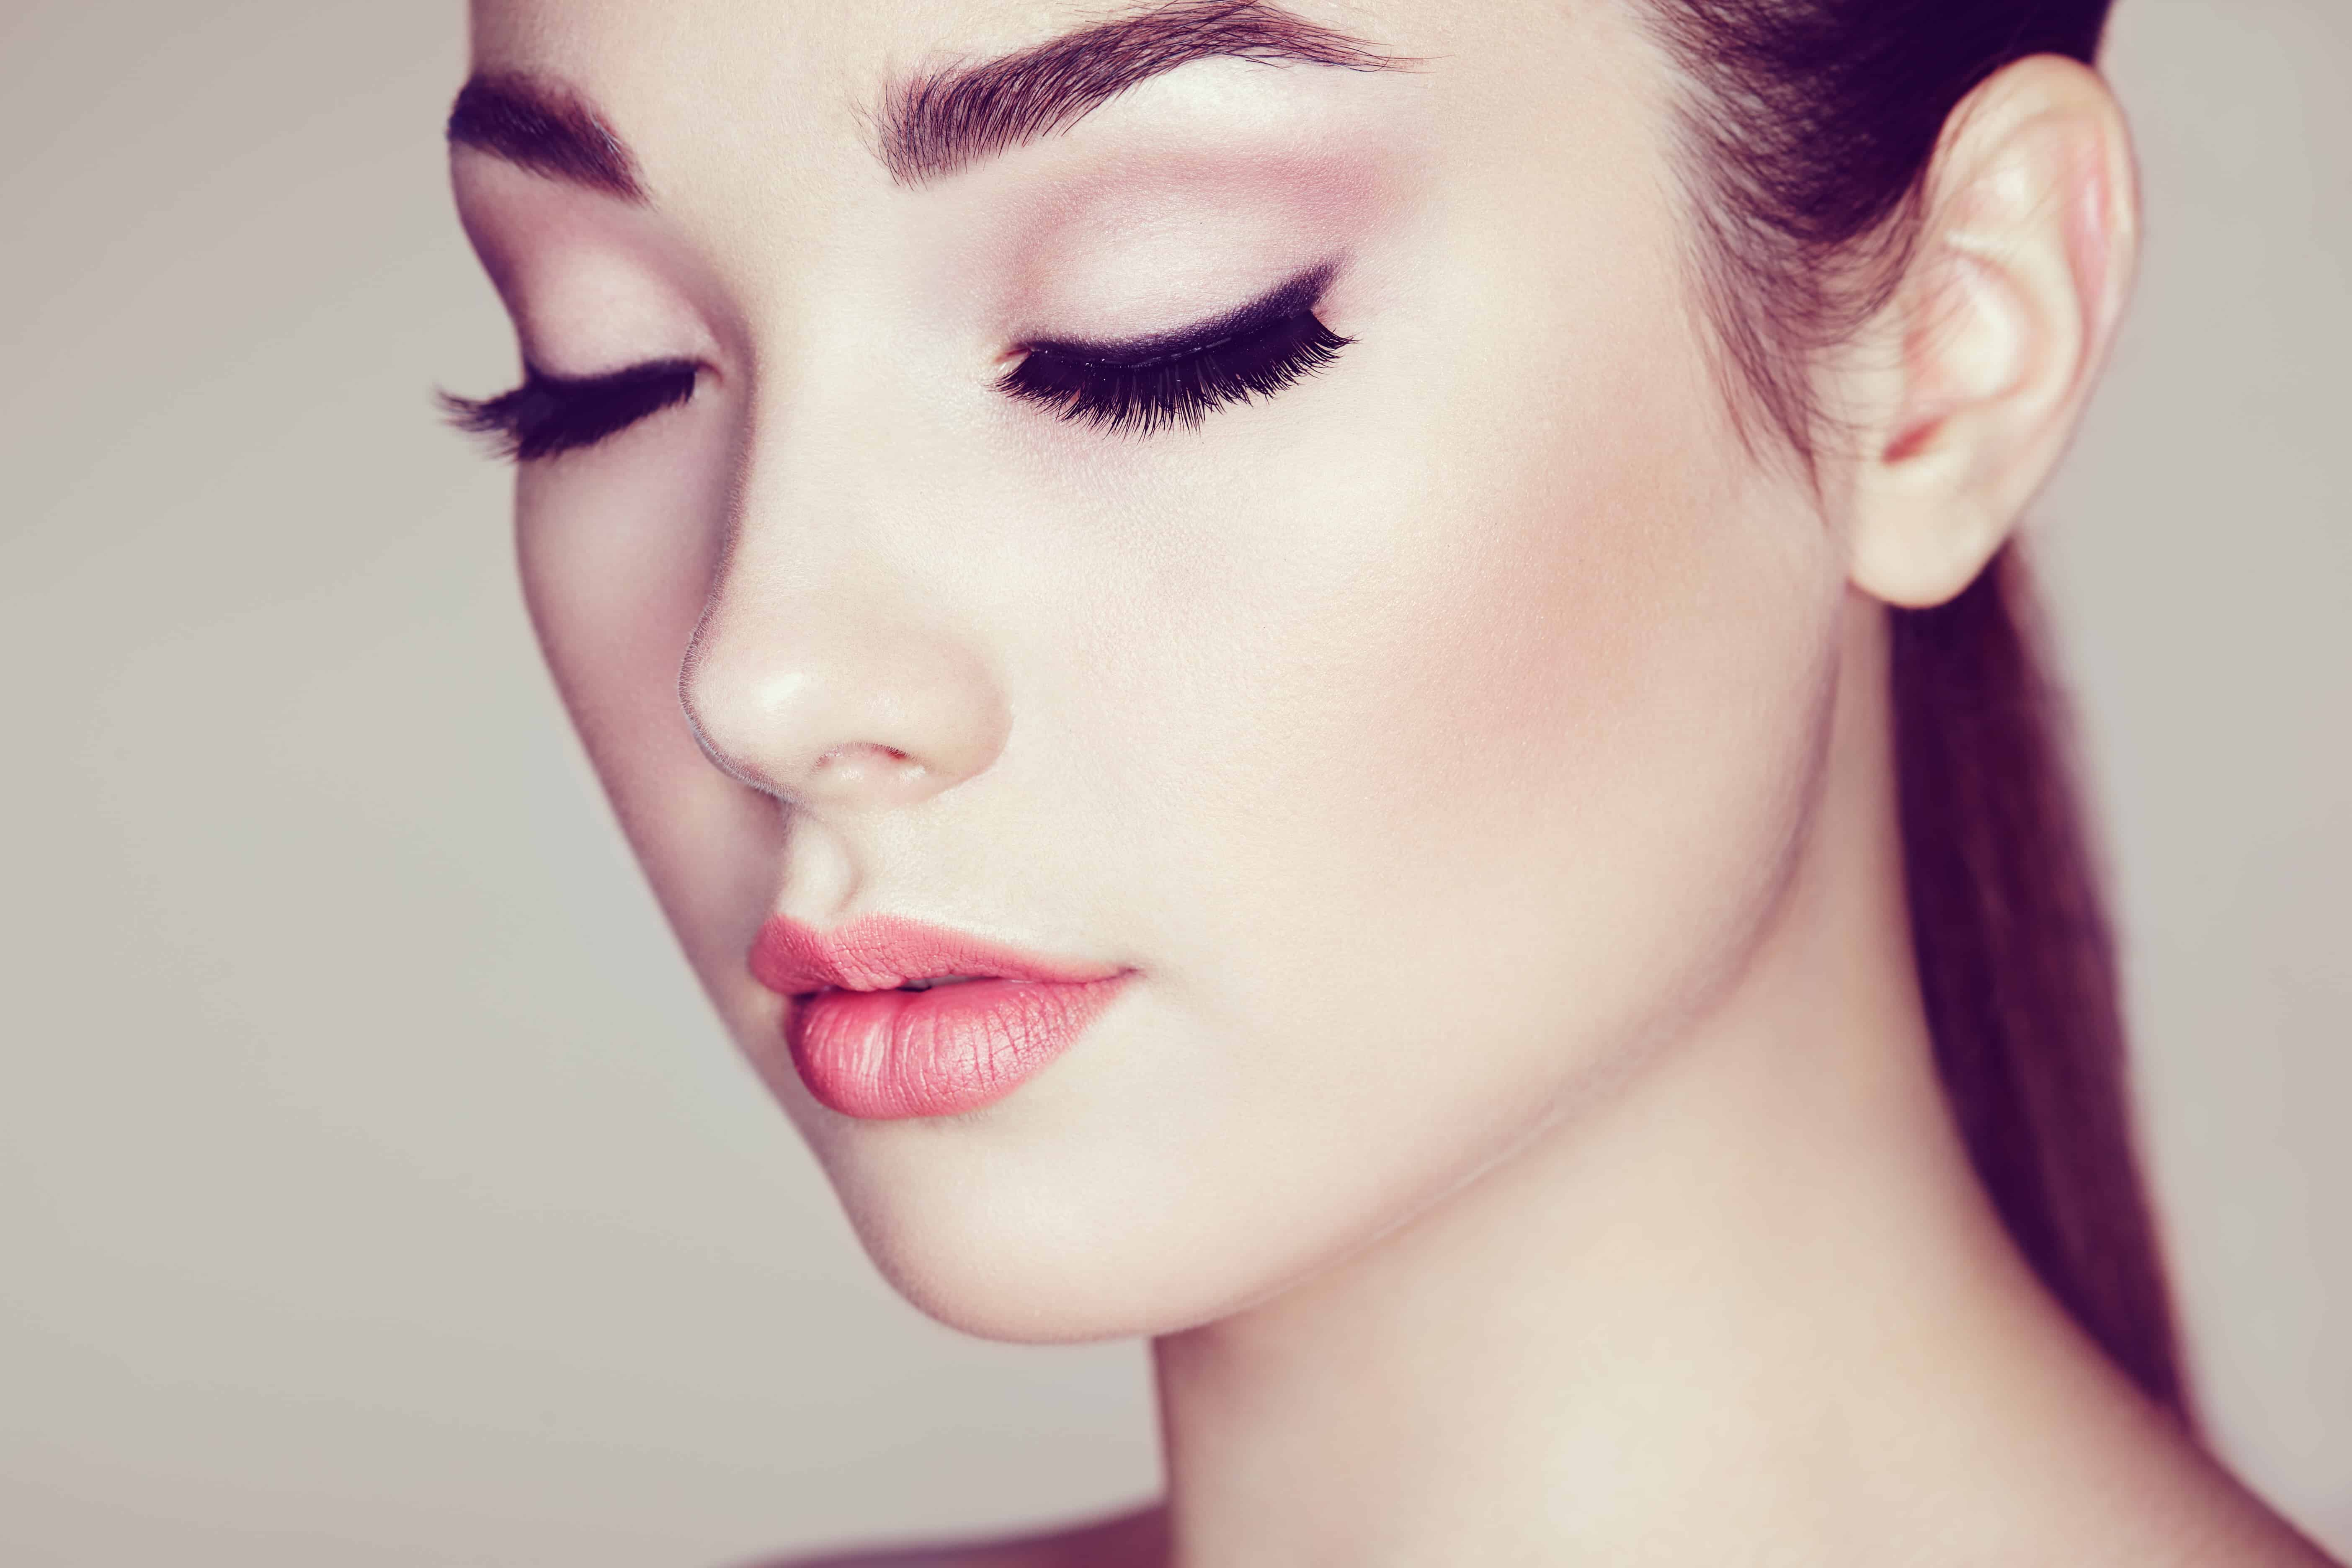 Make Up Tips for Extension Wearers